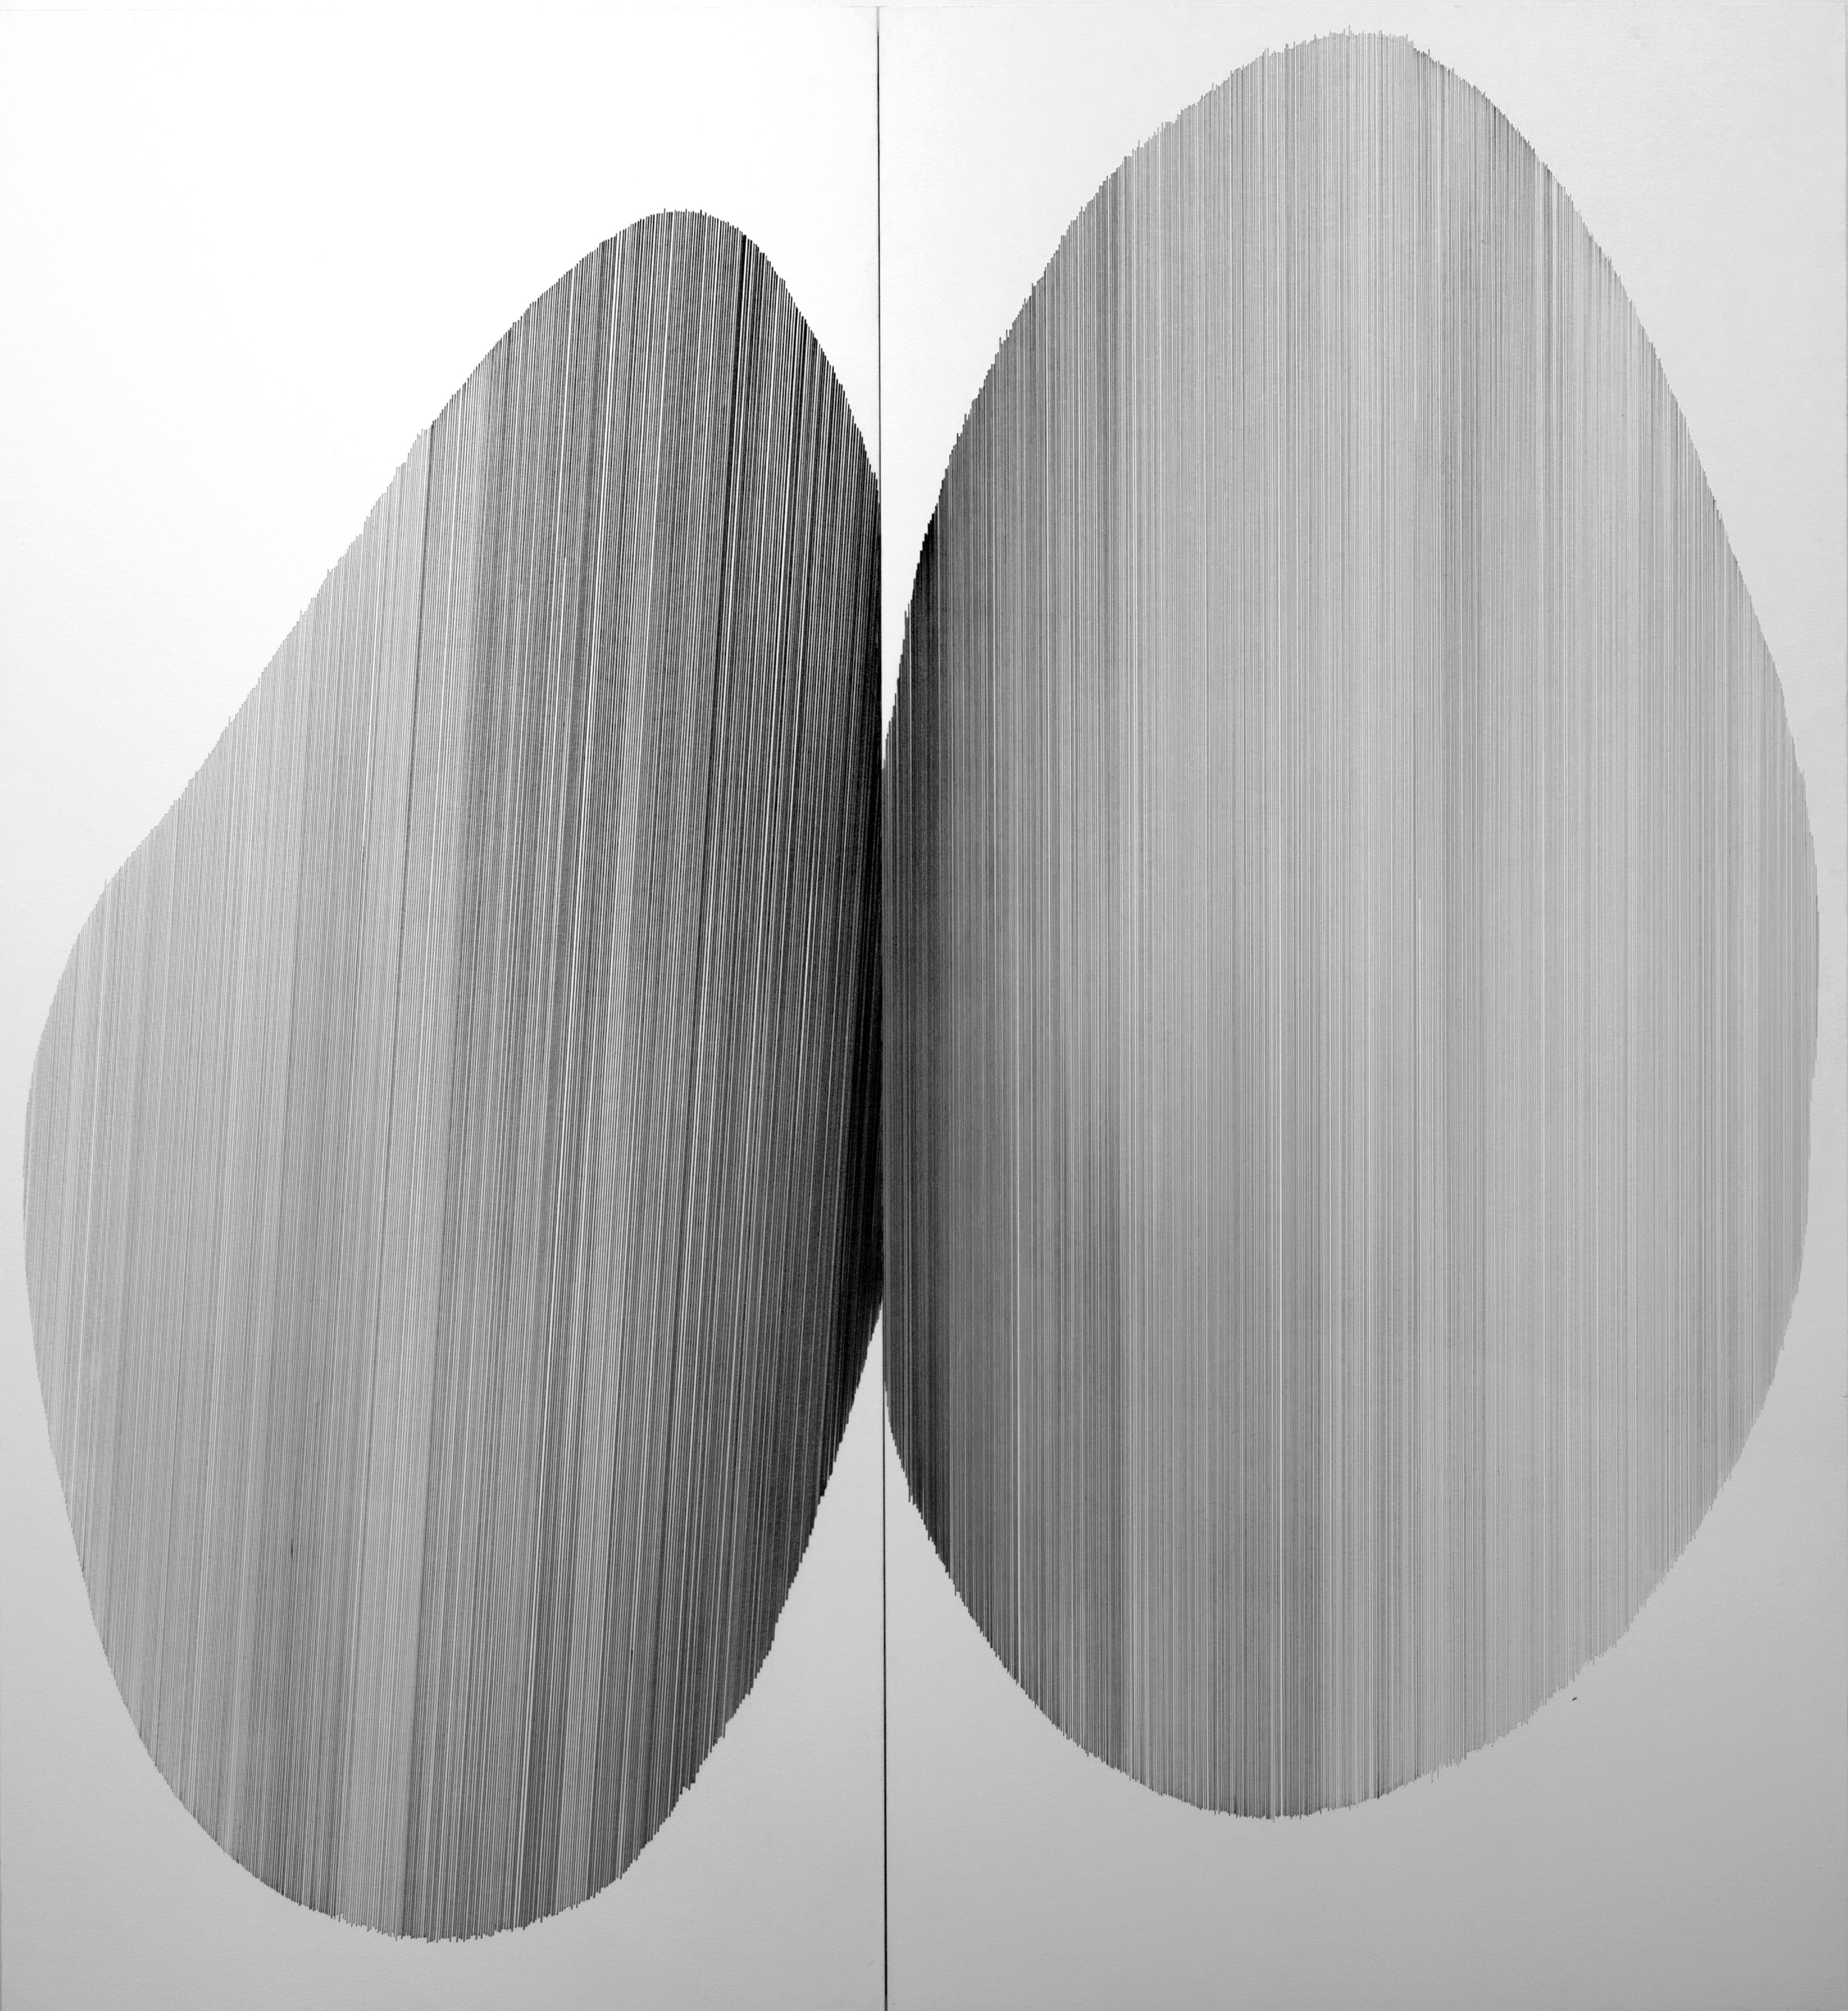 tandem 04   2016   graphite on mat board   46 by 50 inches